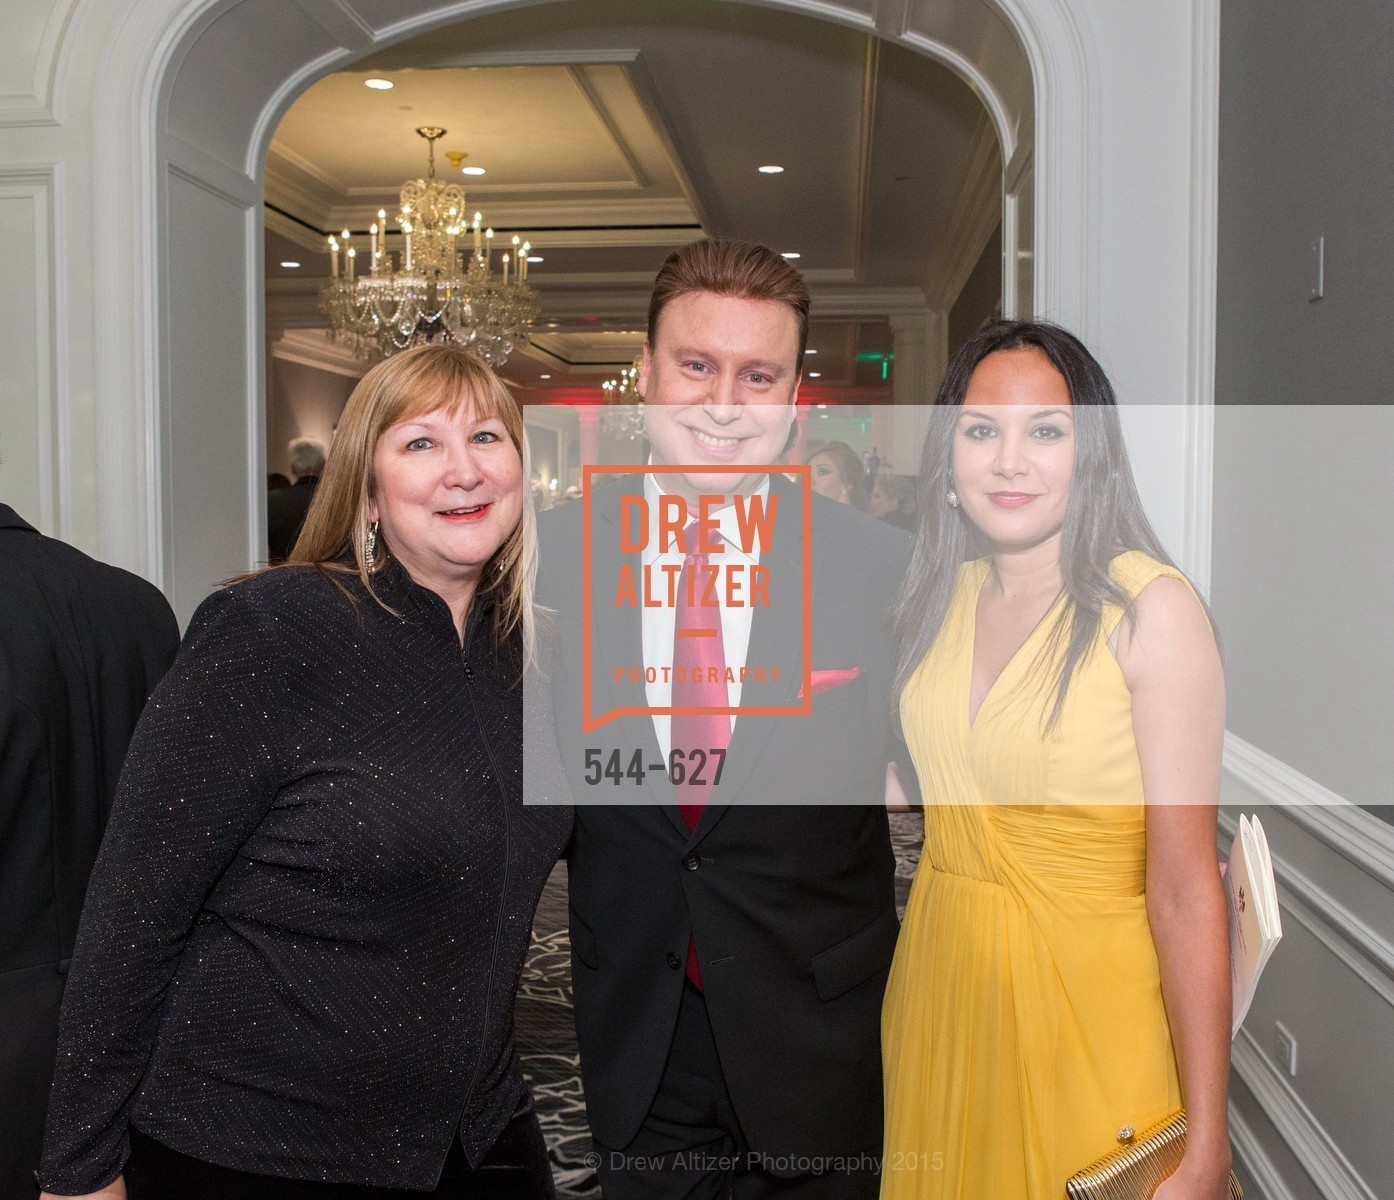 Veronica Labeau, Doug Waggener, Bahya Oumil-Murad, Sovereign Order Of St John of Jerusalem Knights Hospitaller Gala, Ritz Carlton San Francisco, December 5th, 2015,Drew Altizer, Drew Altizer Photography, full-service event agency, private events, San Francisco photographer, photographer California